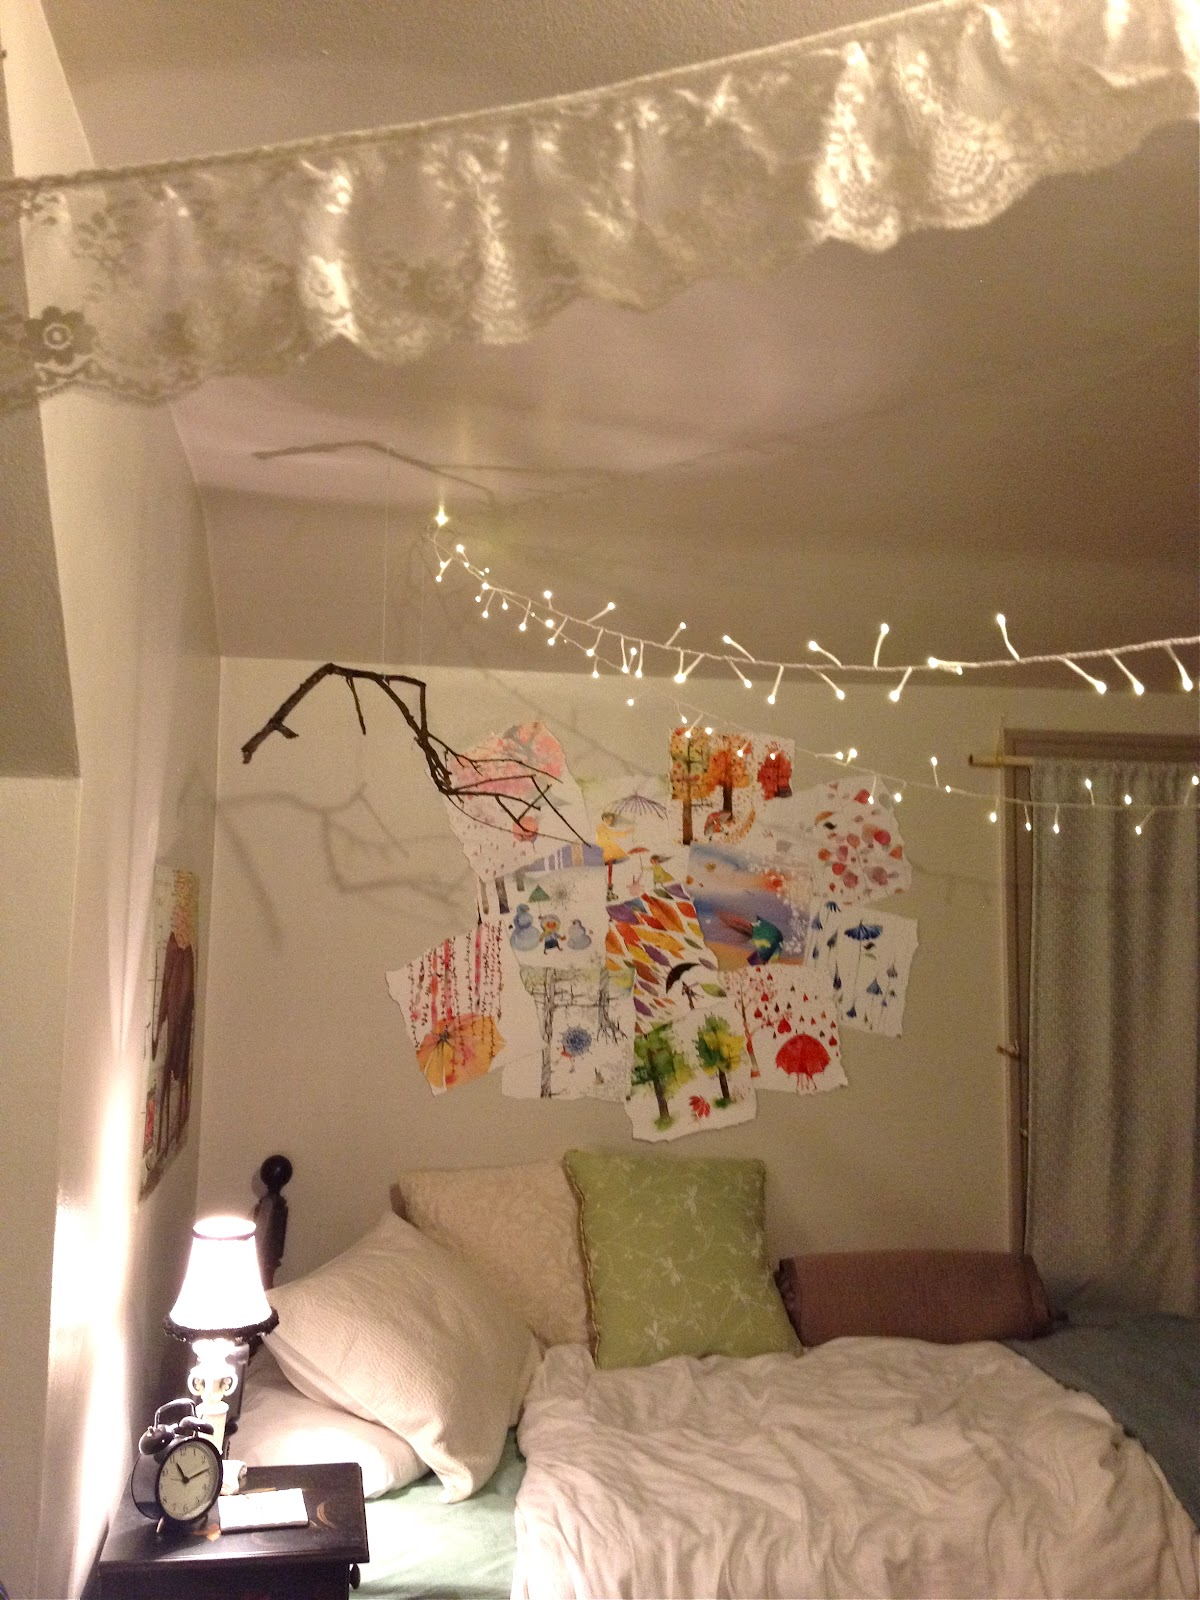 String White Lights Bedroom : courtney lane: My Seattle Home {Part 1: Details of My Bedroom}